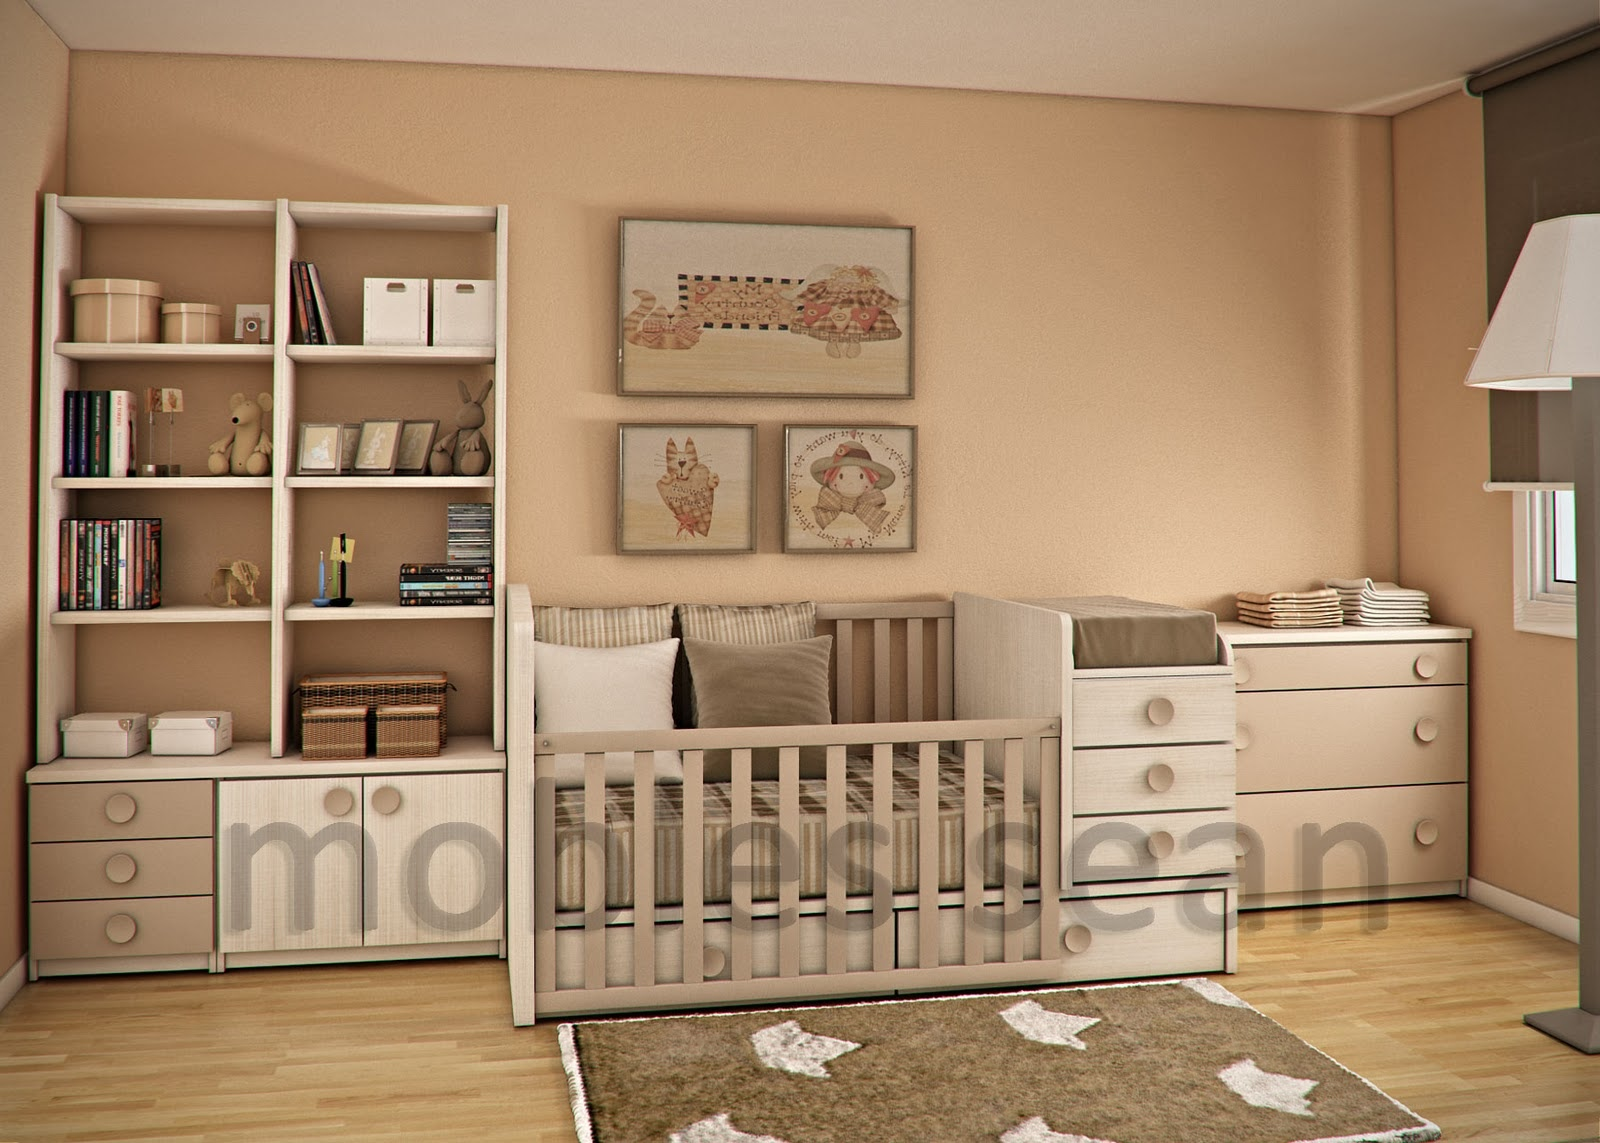 Ideas For Small Kids Rooms Space Saving Designs For Small Kids Rooms